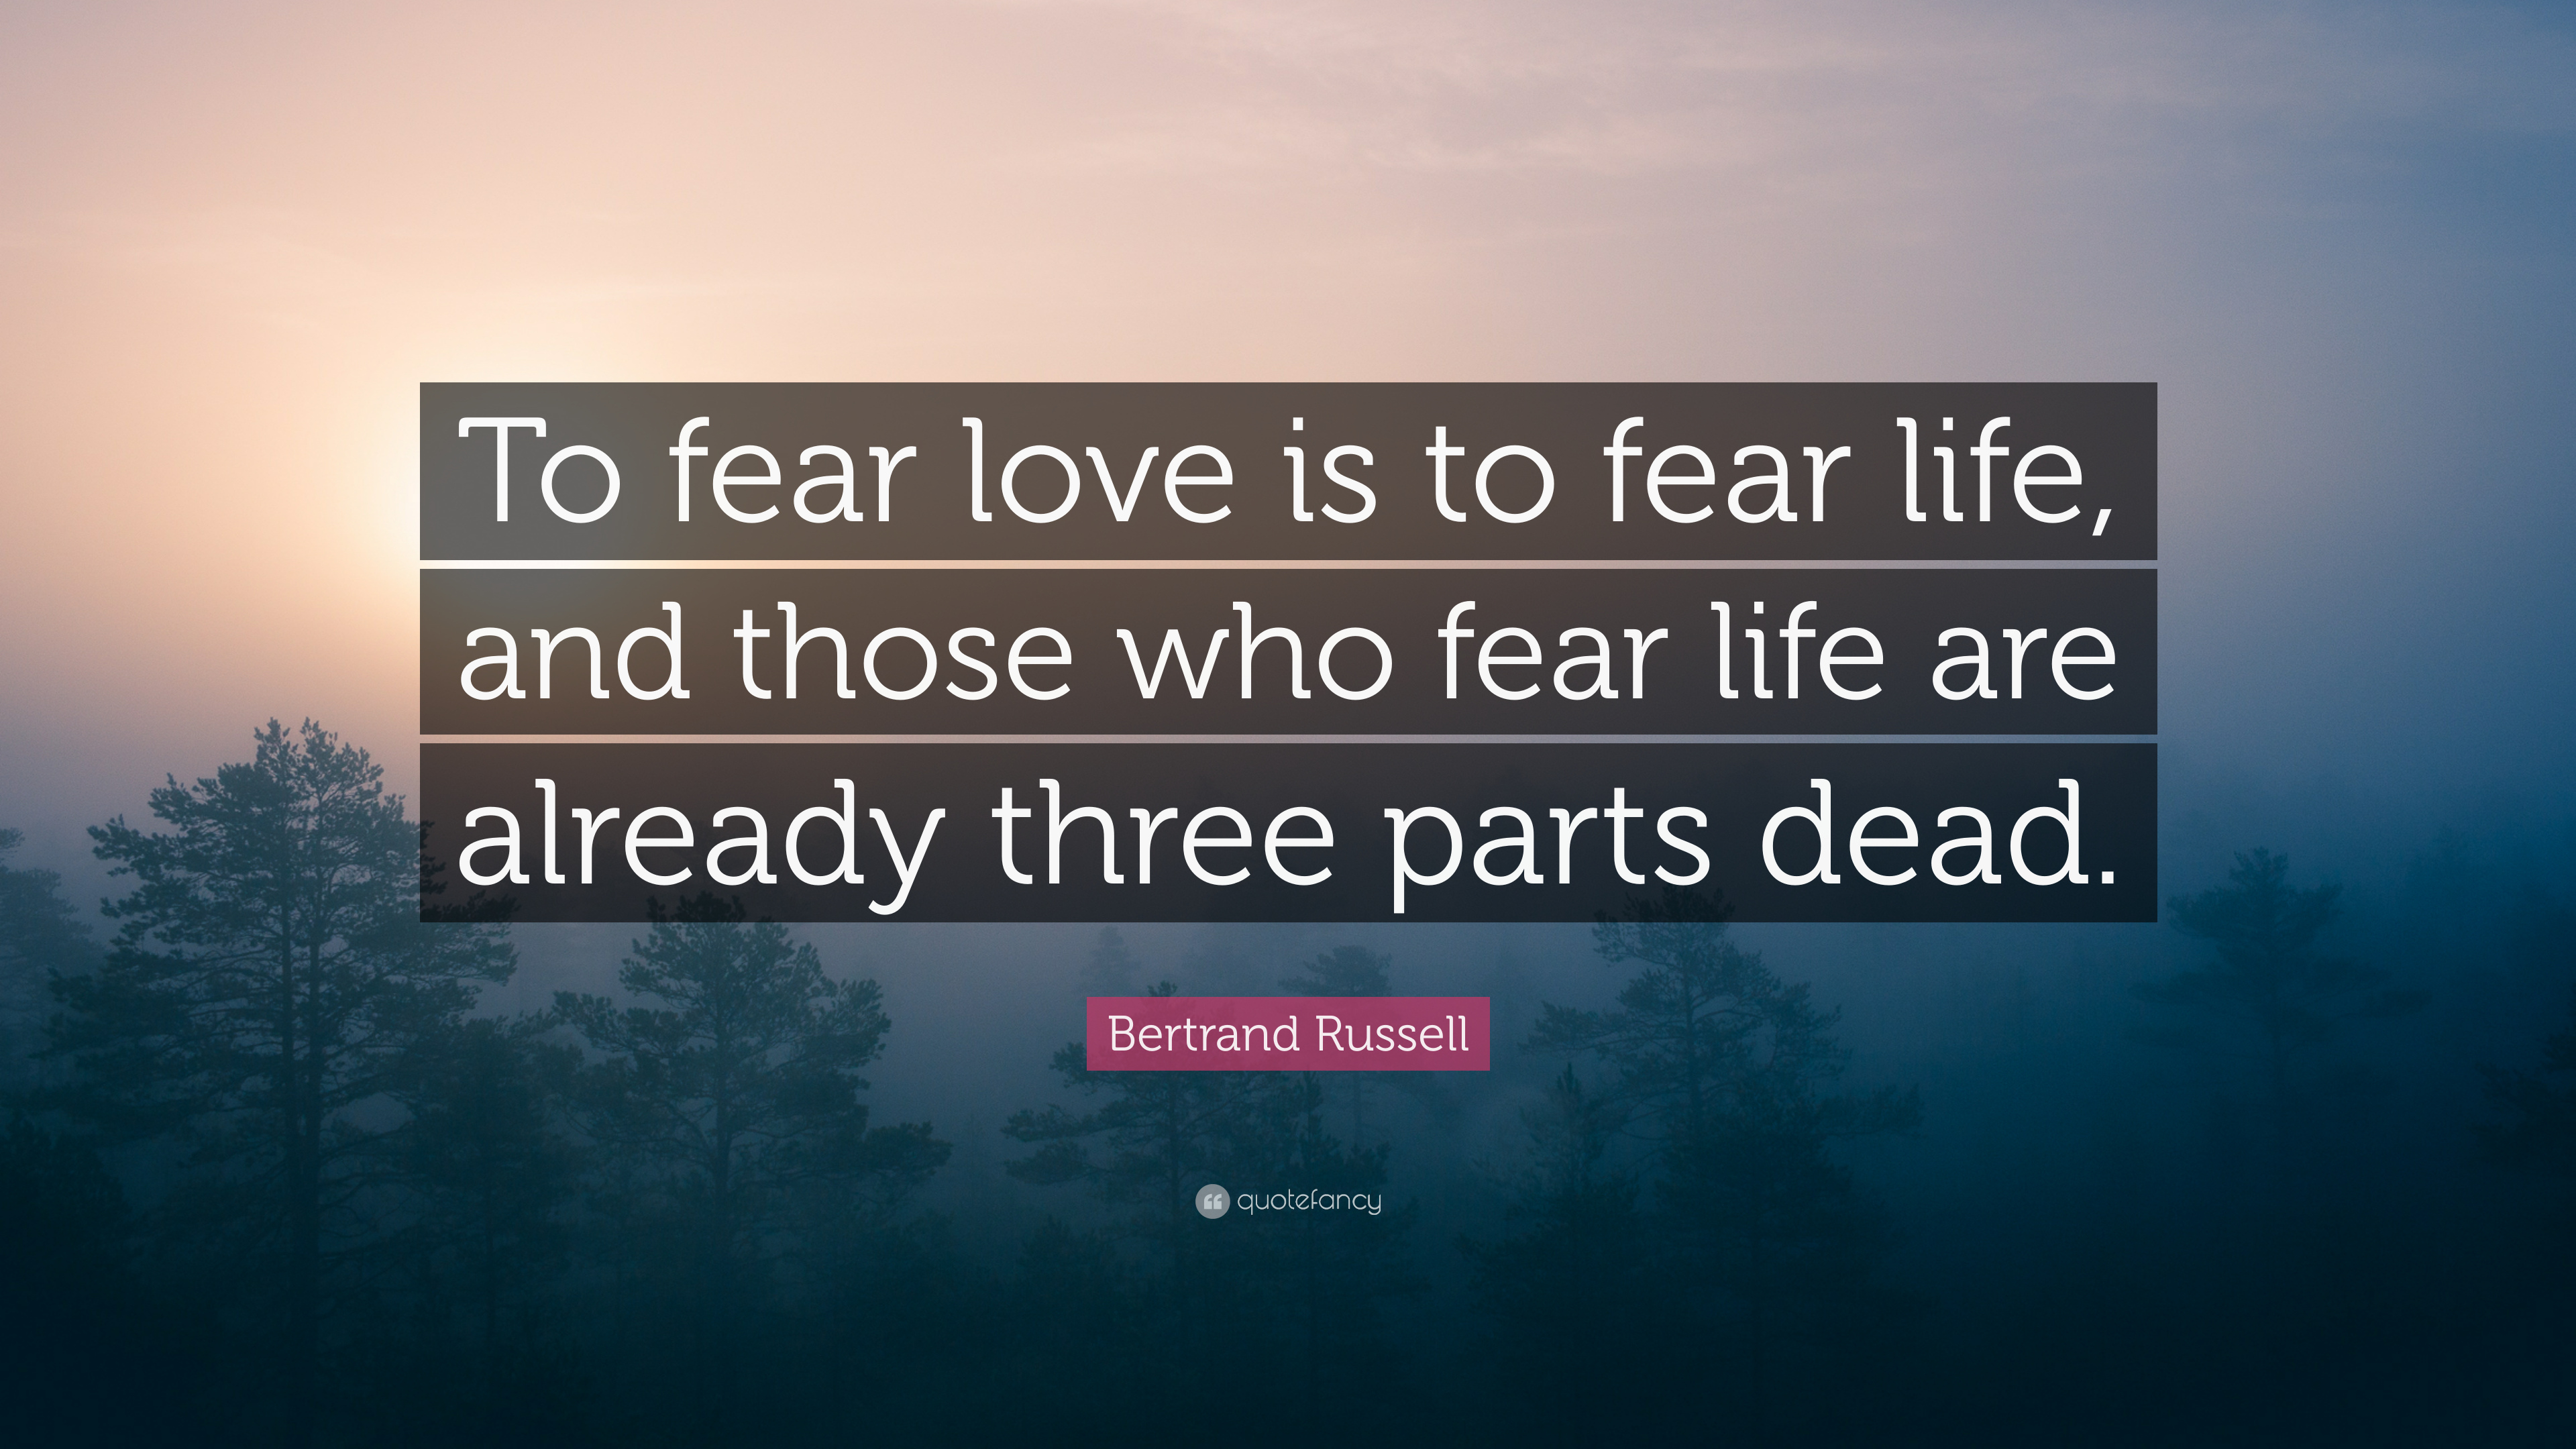 Bertrand Russell Quote To Fear Love Is To Fear Life And Those Who